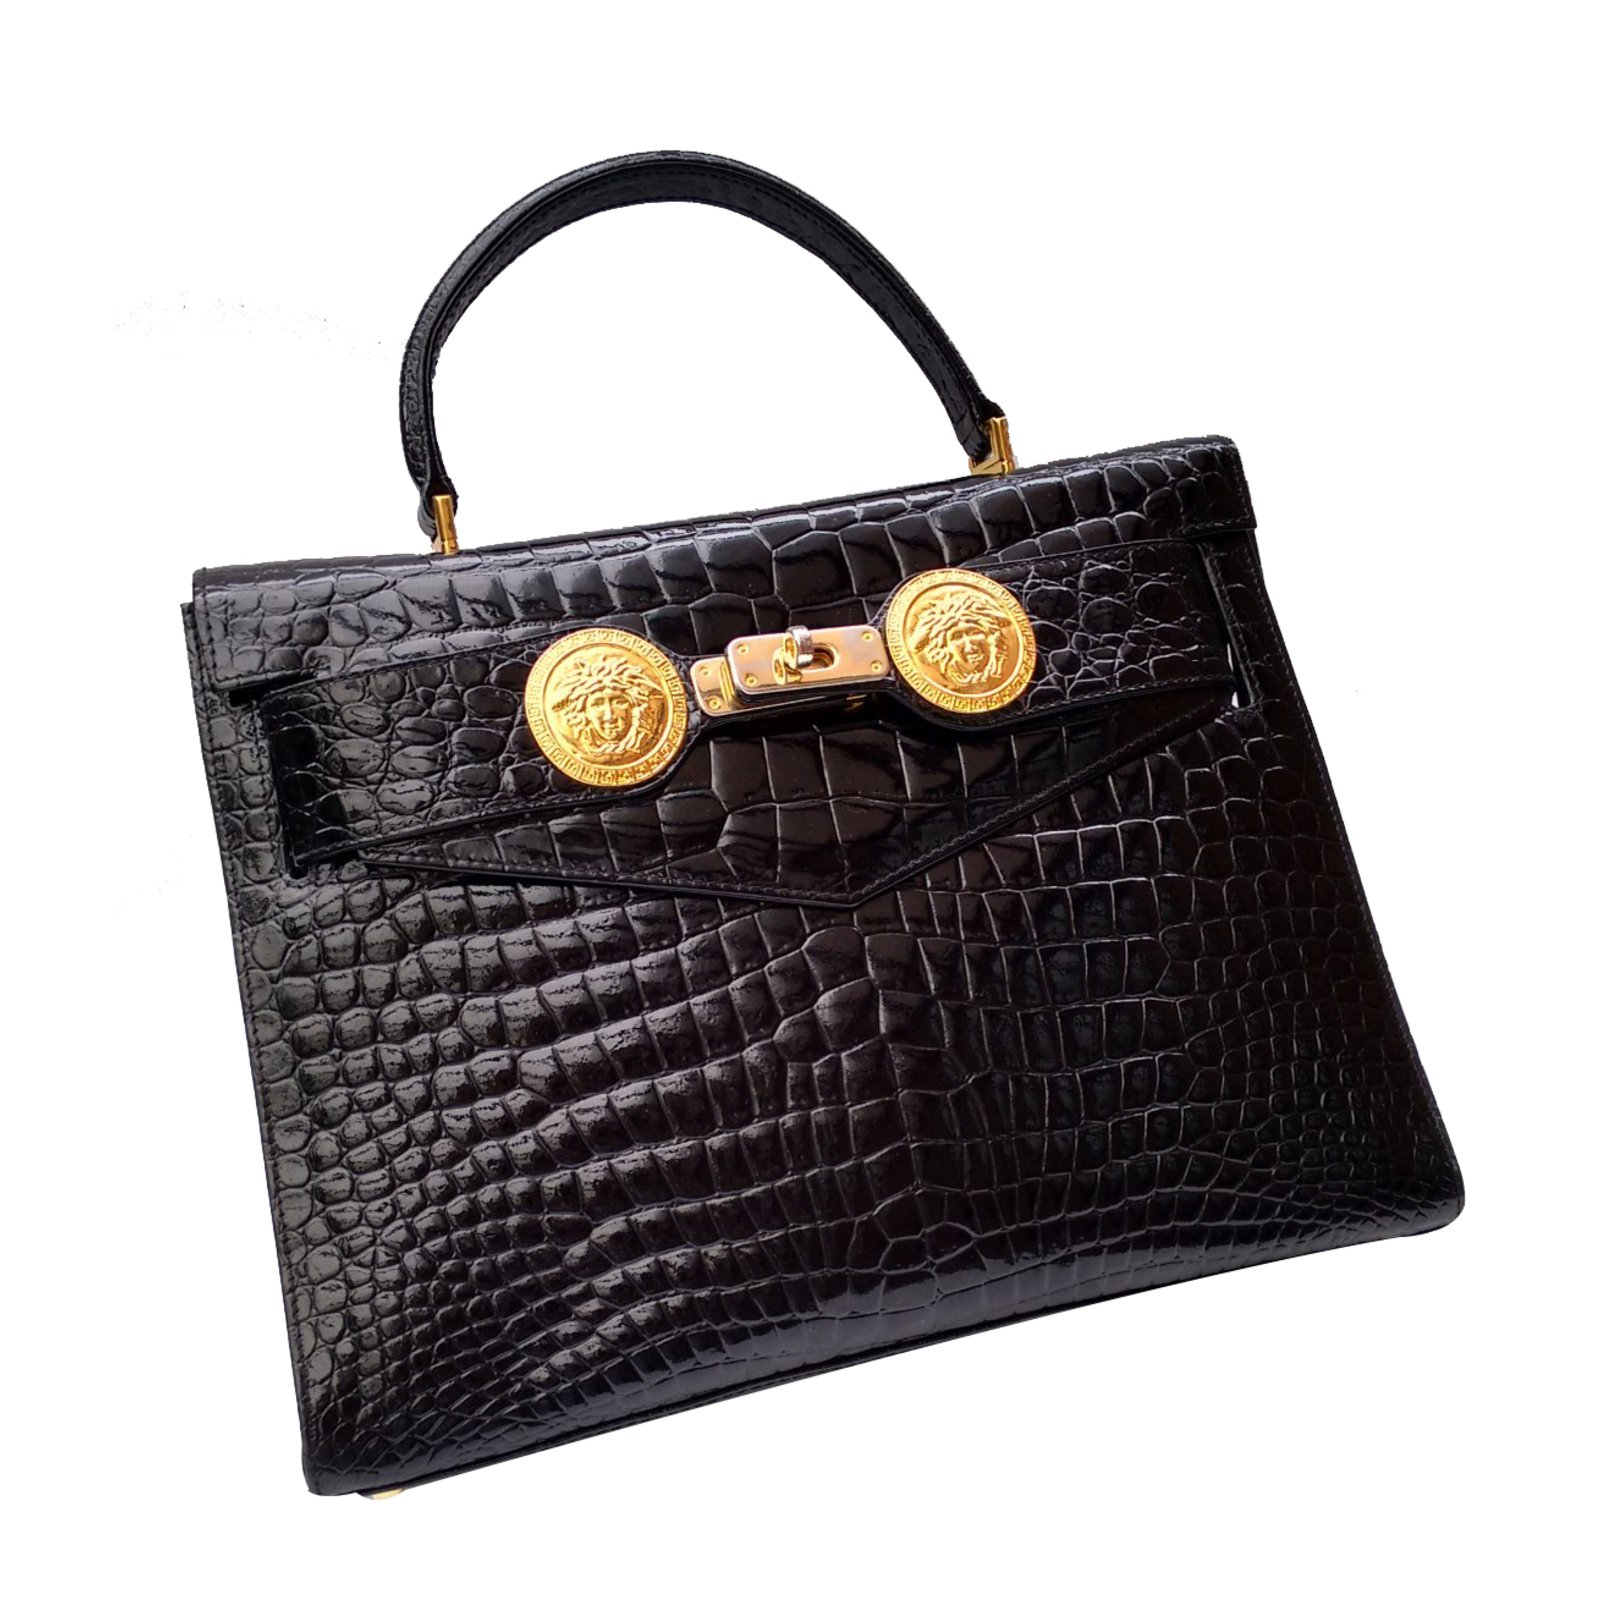 9ba1d6cc26ea Gianni Versace Handbag Handbags Patent leather Black ref.28199 ...